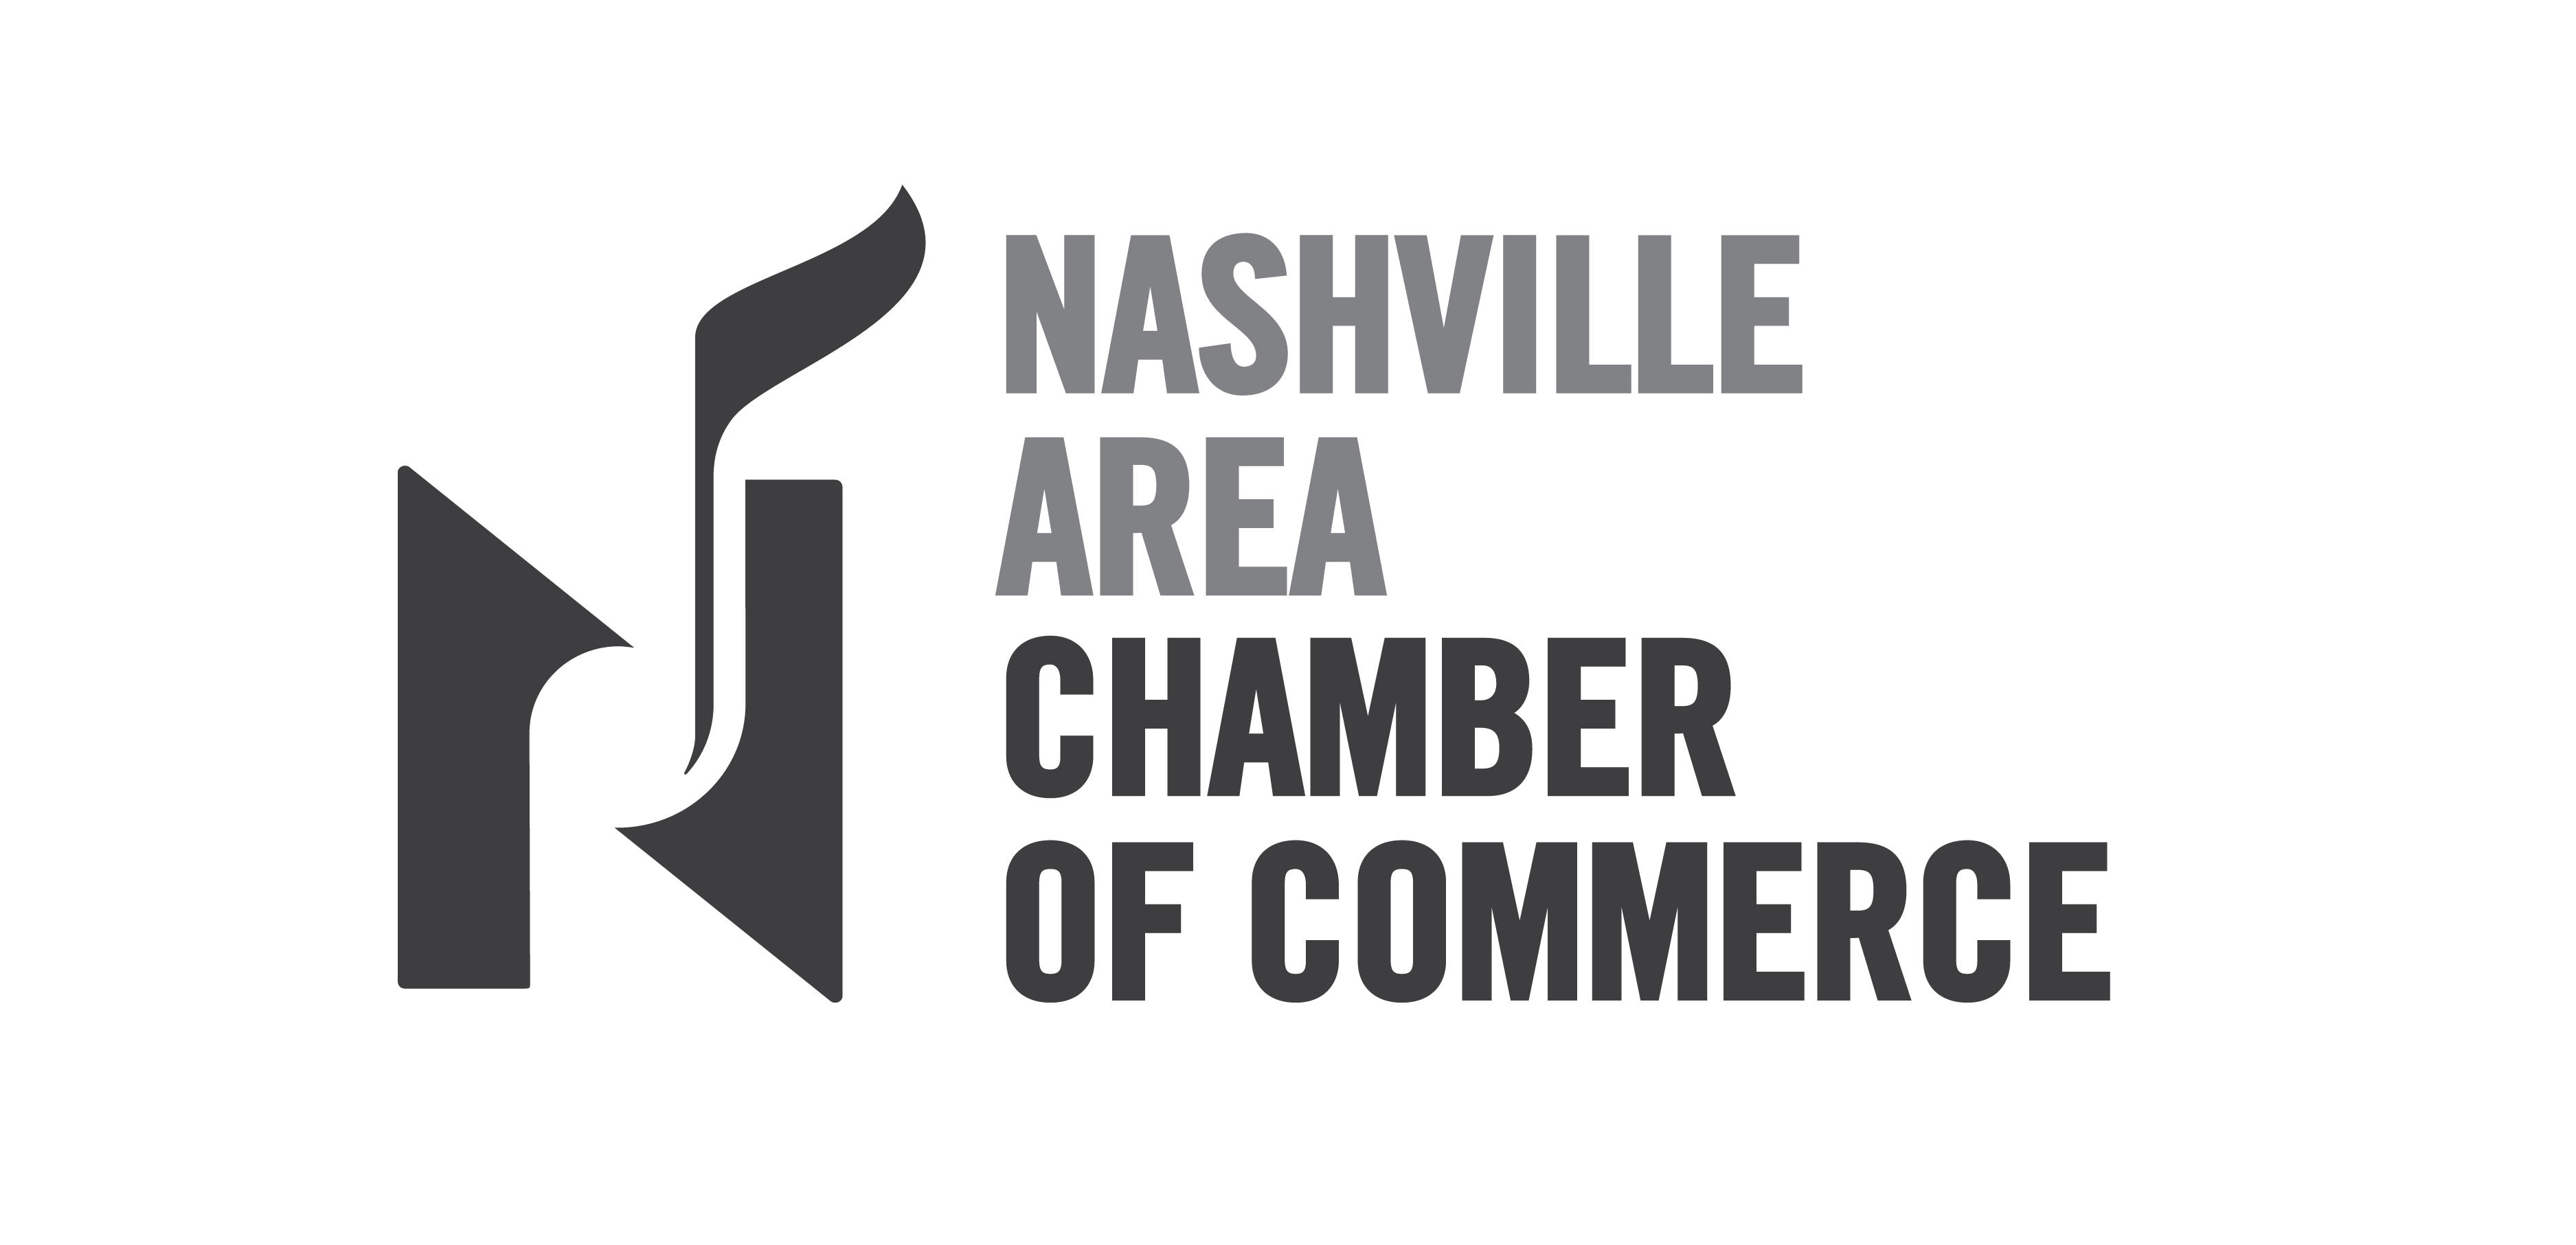 Relocate | Nashville Area Chamber of Commerce